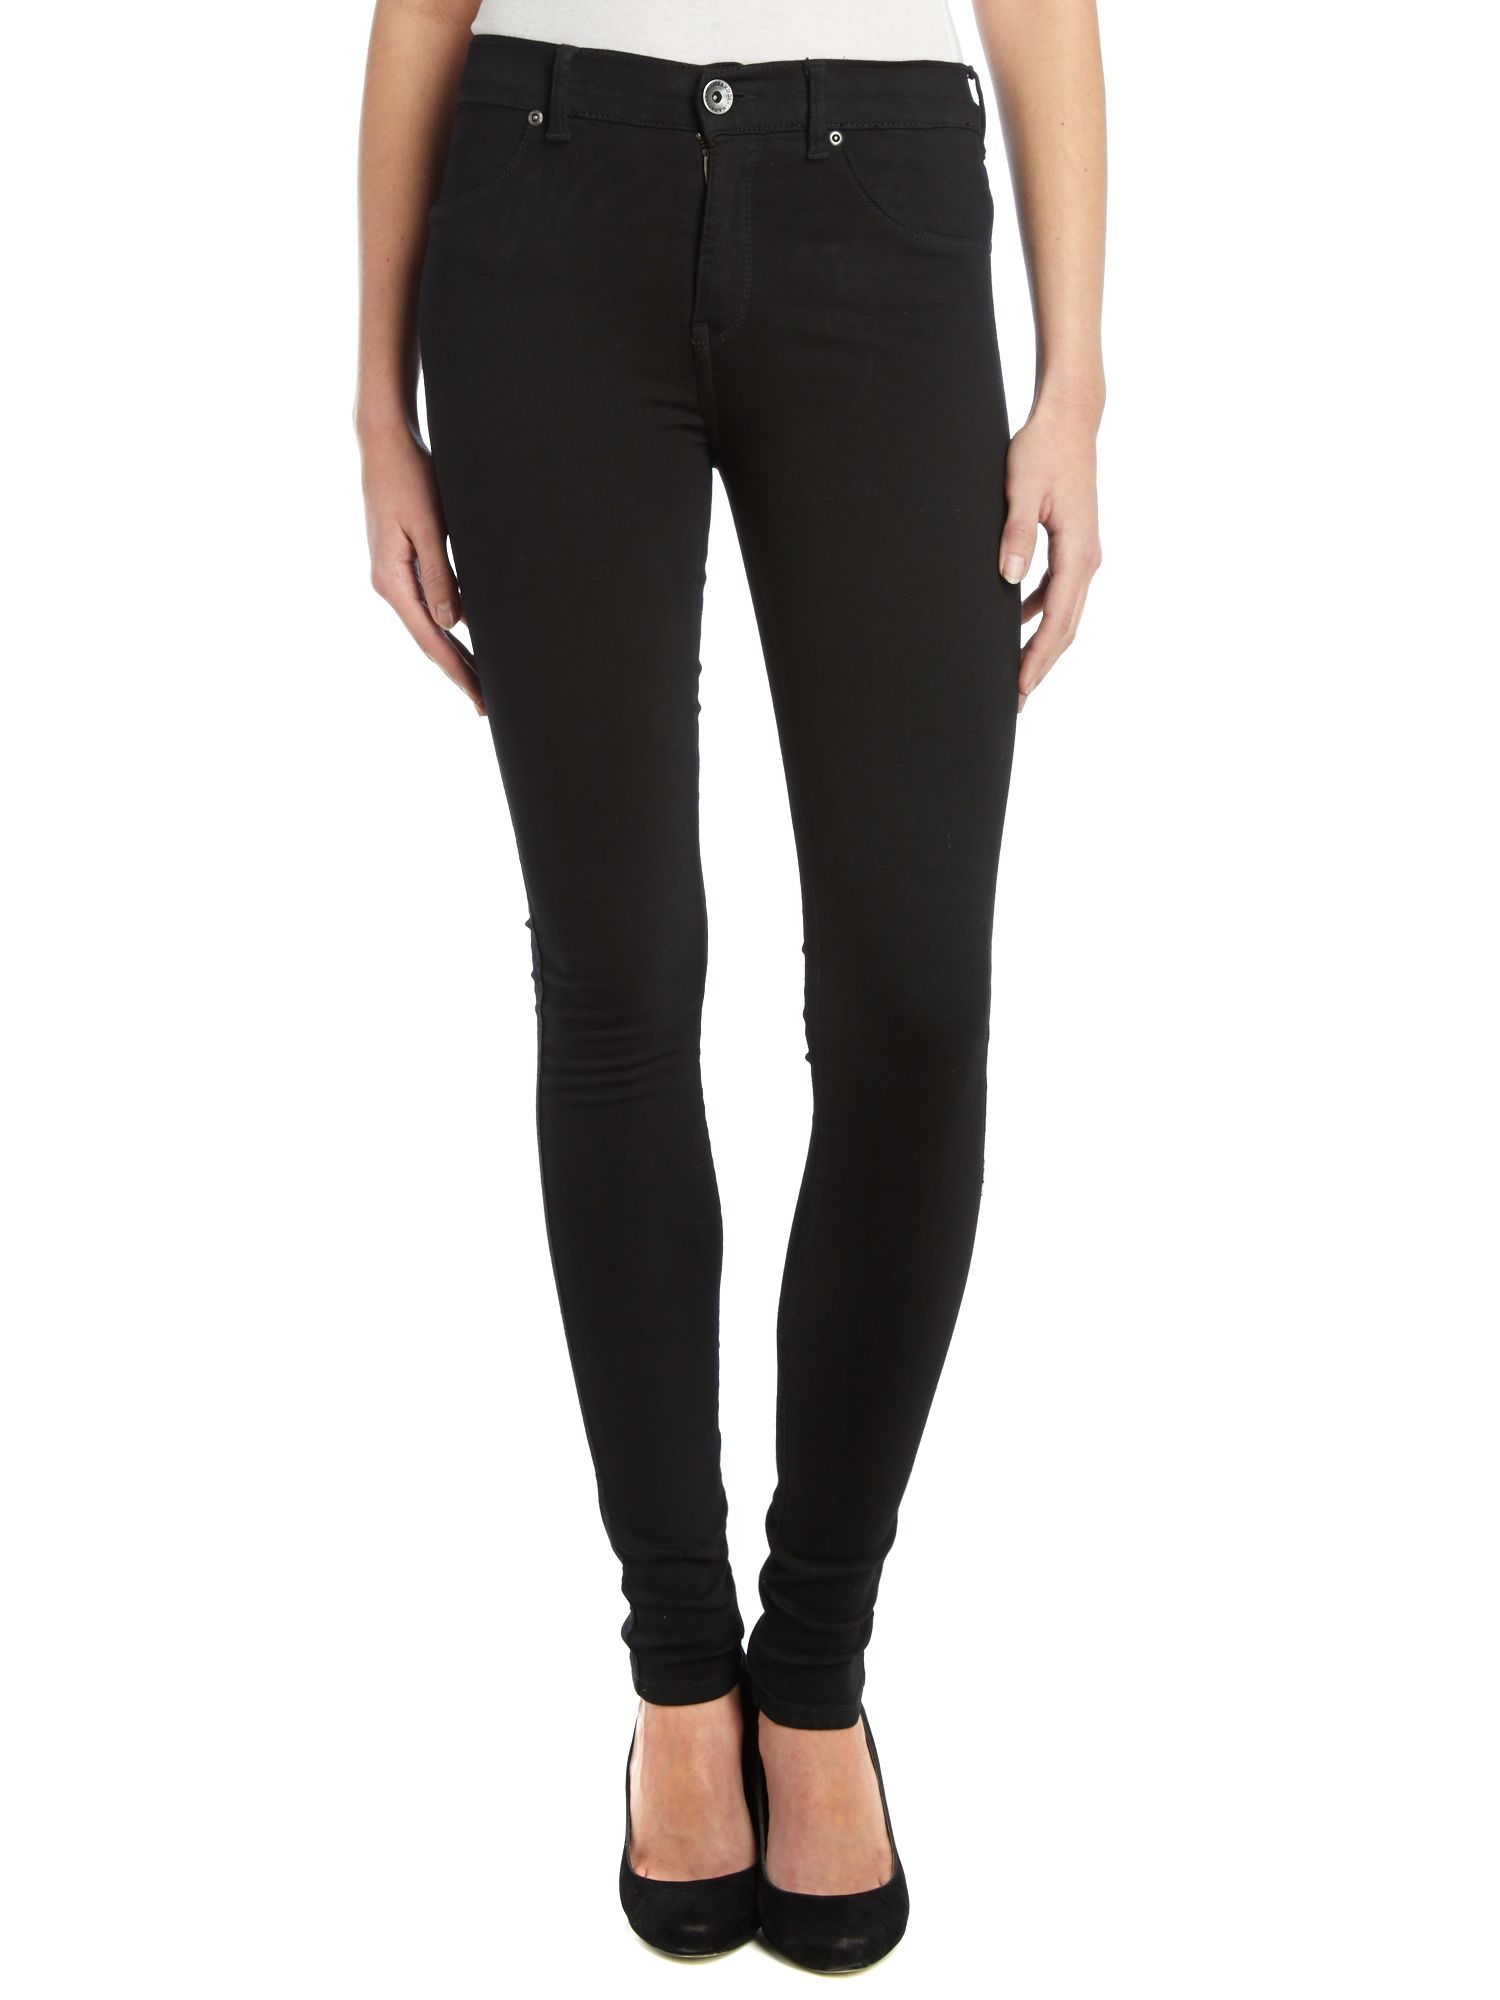 Plenty high-rise skinny jeans in Black